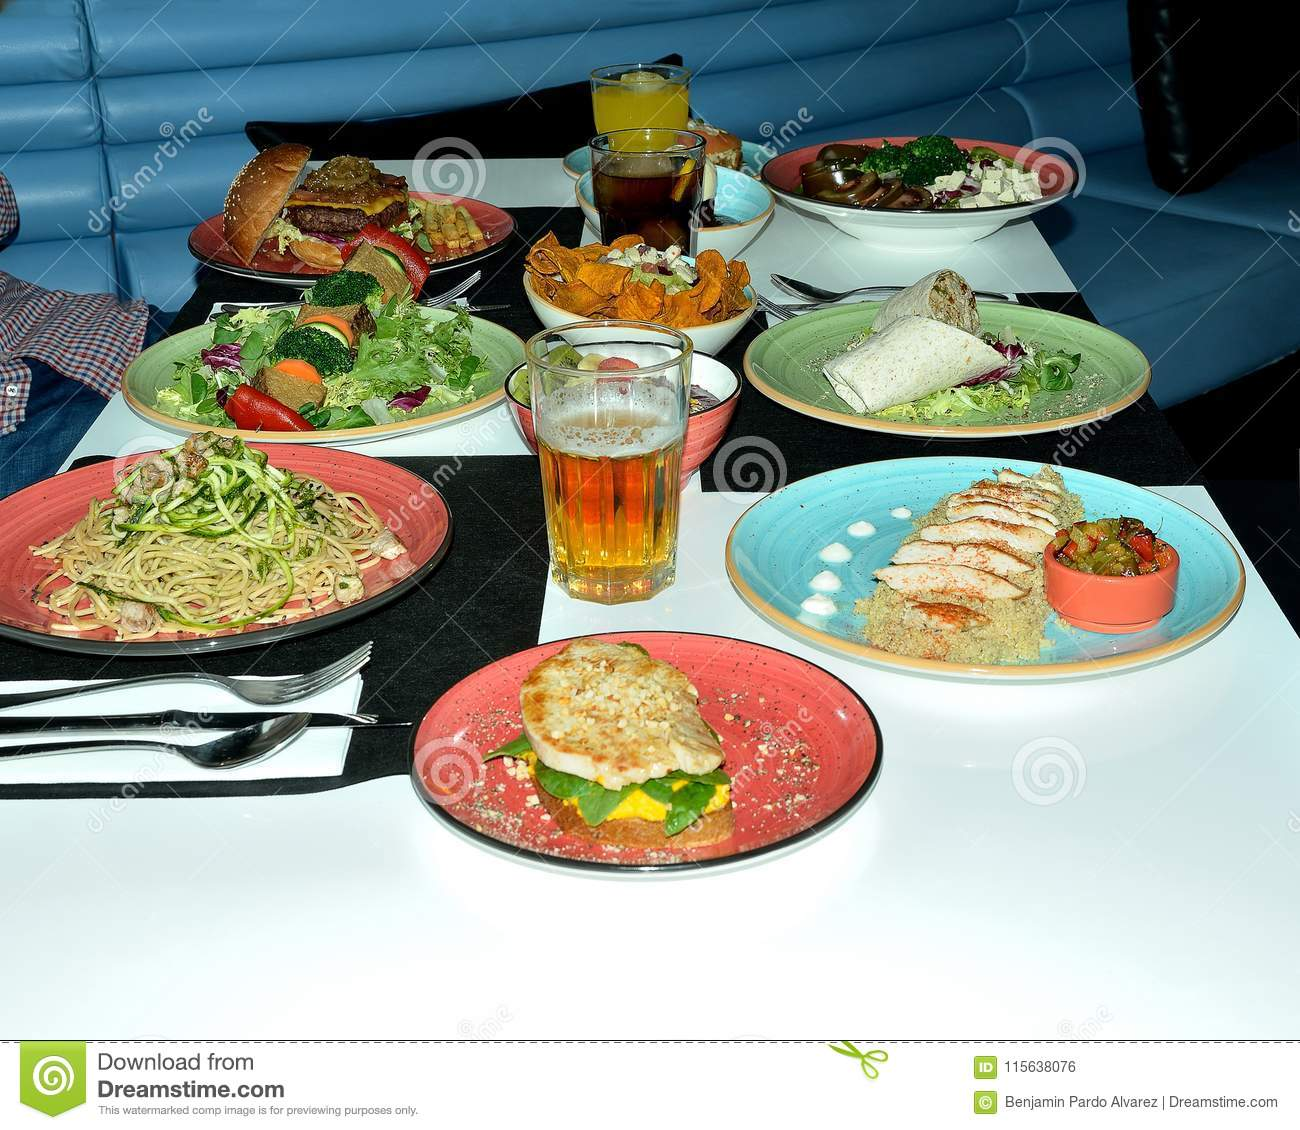 Healthy Food Variety Of Healthy Dishes Recommended For